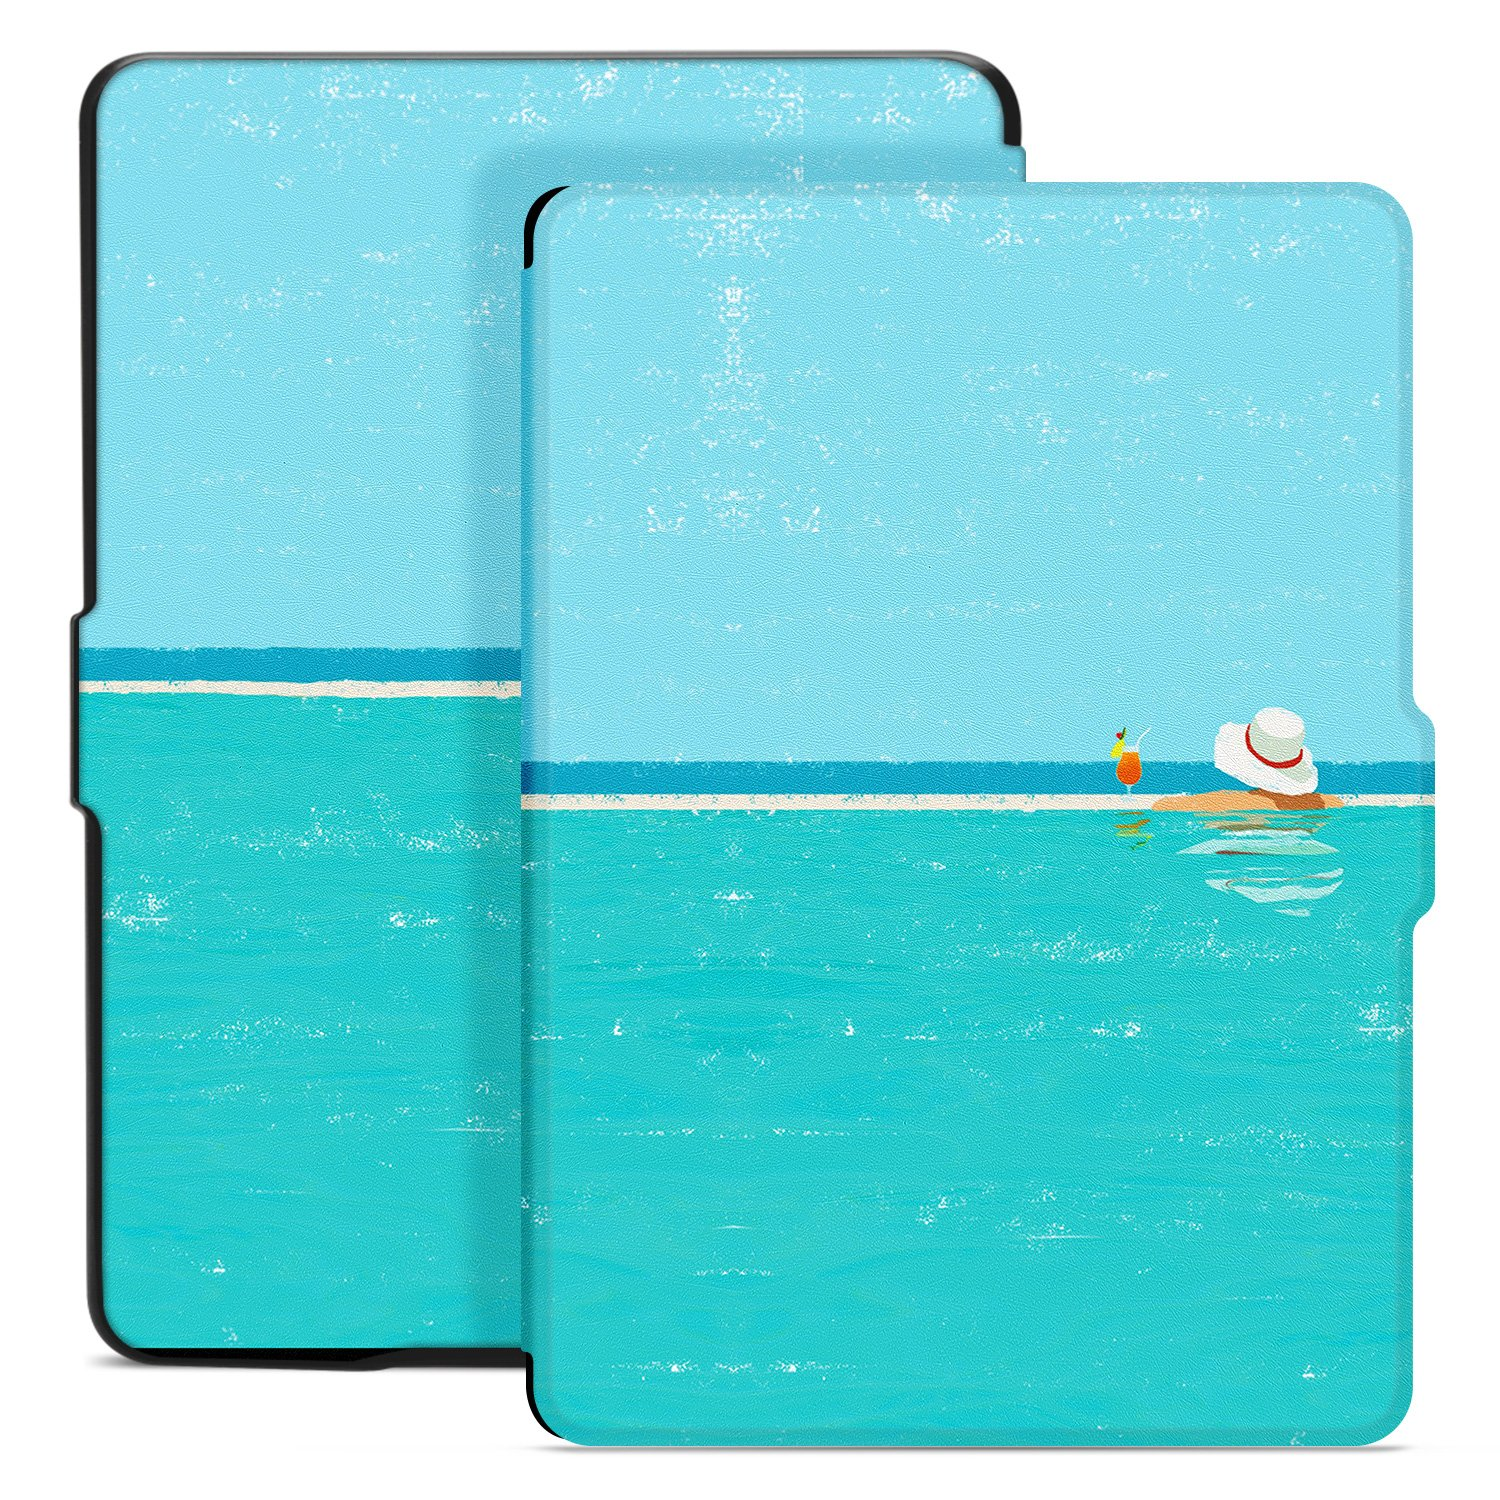 Ayotu Colorful Case for Kindle Paperwhite E-reader Auto Wake/Sleep Smart Protective Cover Case,Fits All 2012, 2013, 2015 and 2016 Versions Kindle Paperwhite 300 PPI, K5-09 The Summertime